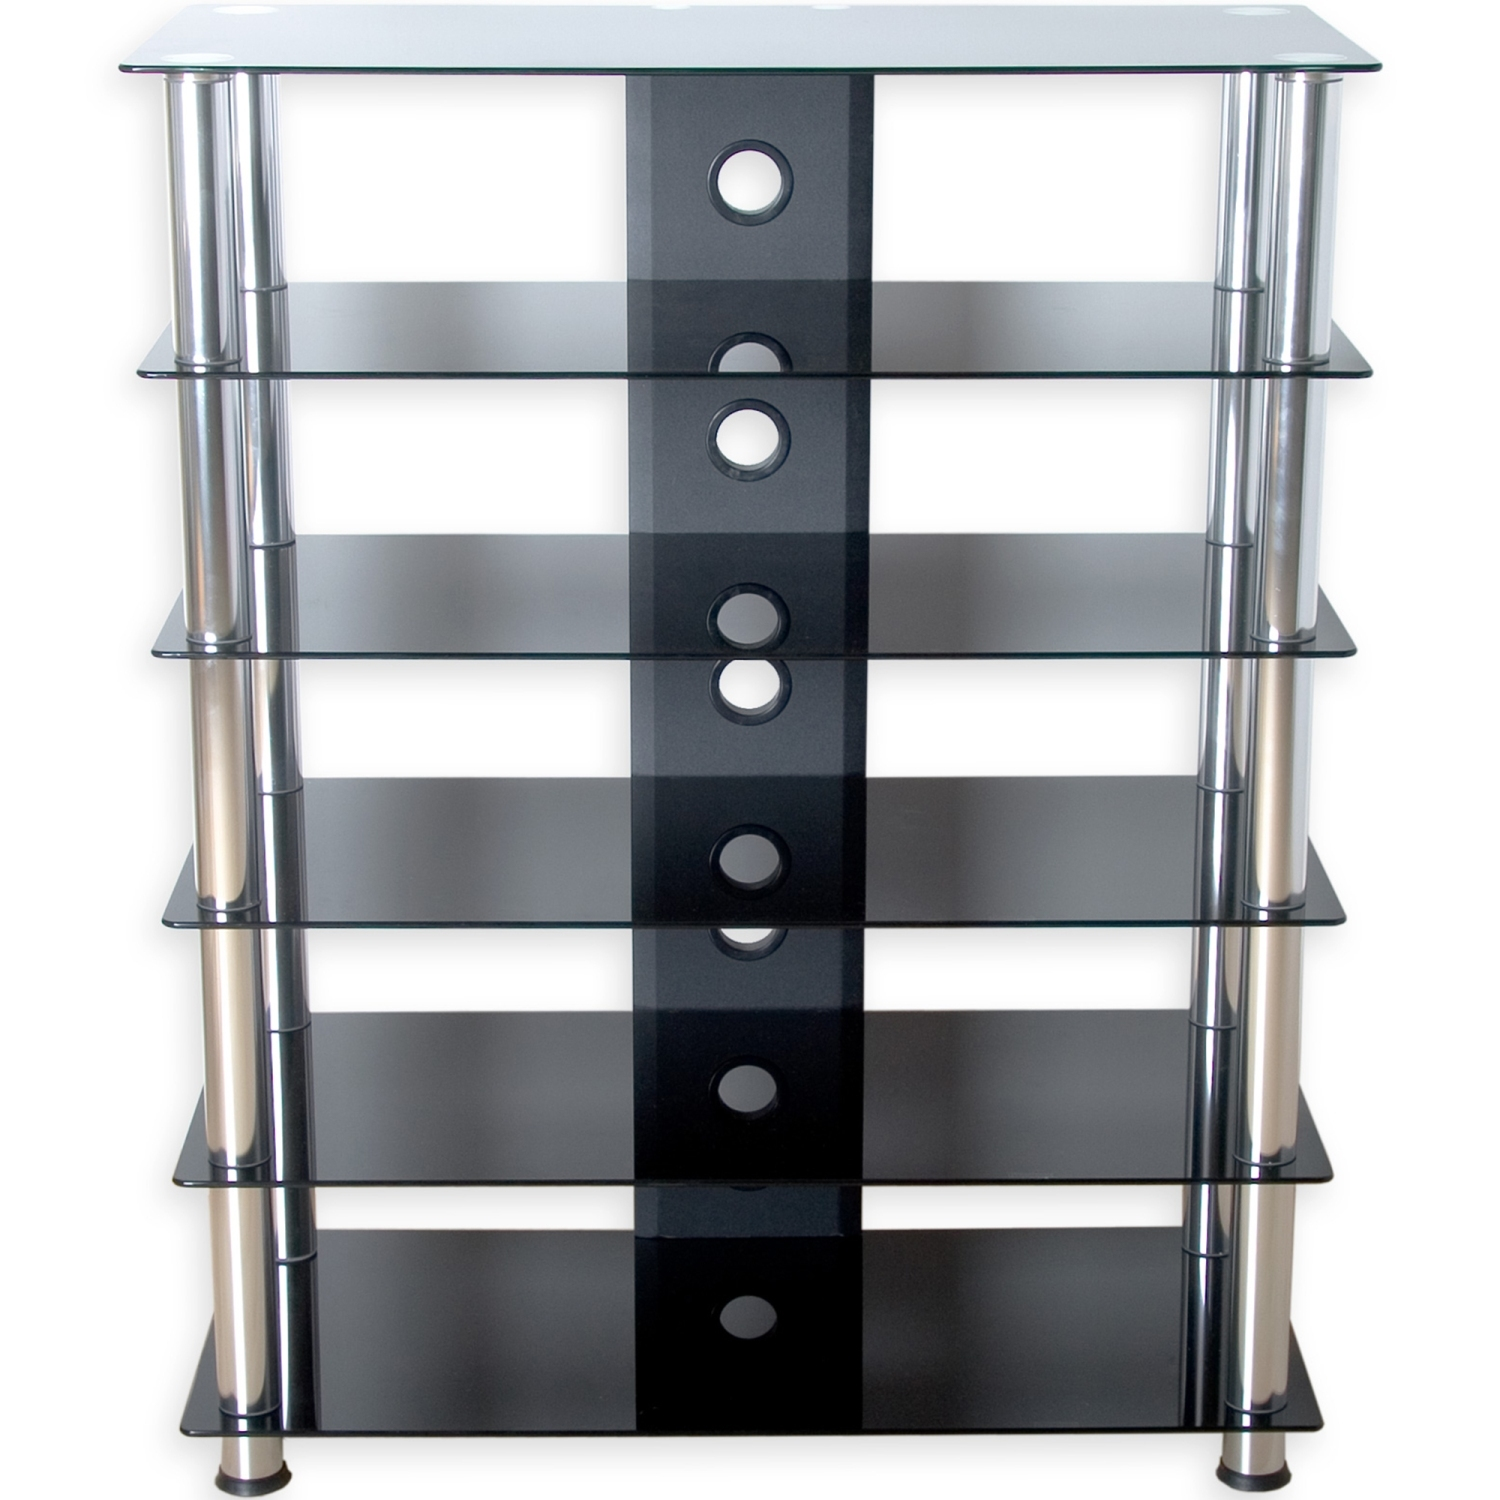 stilista tv rack schrank st nder m bel regal hifi audio glas schwarzglas ebay